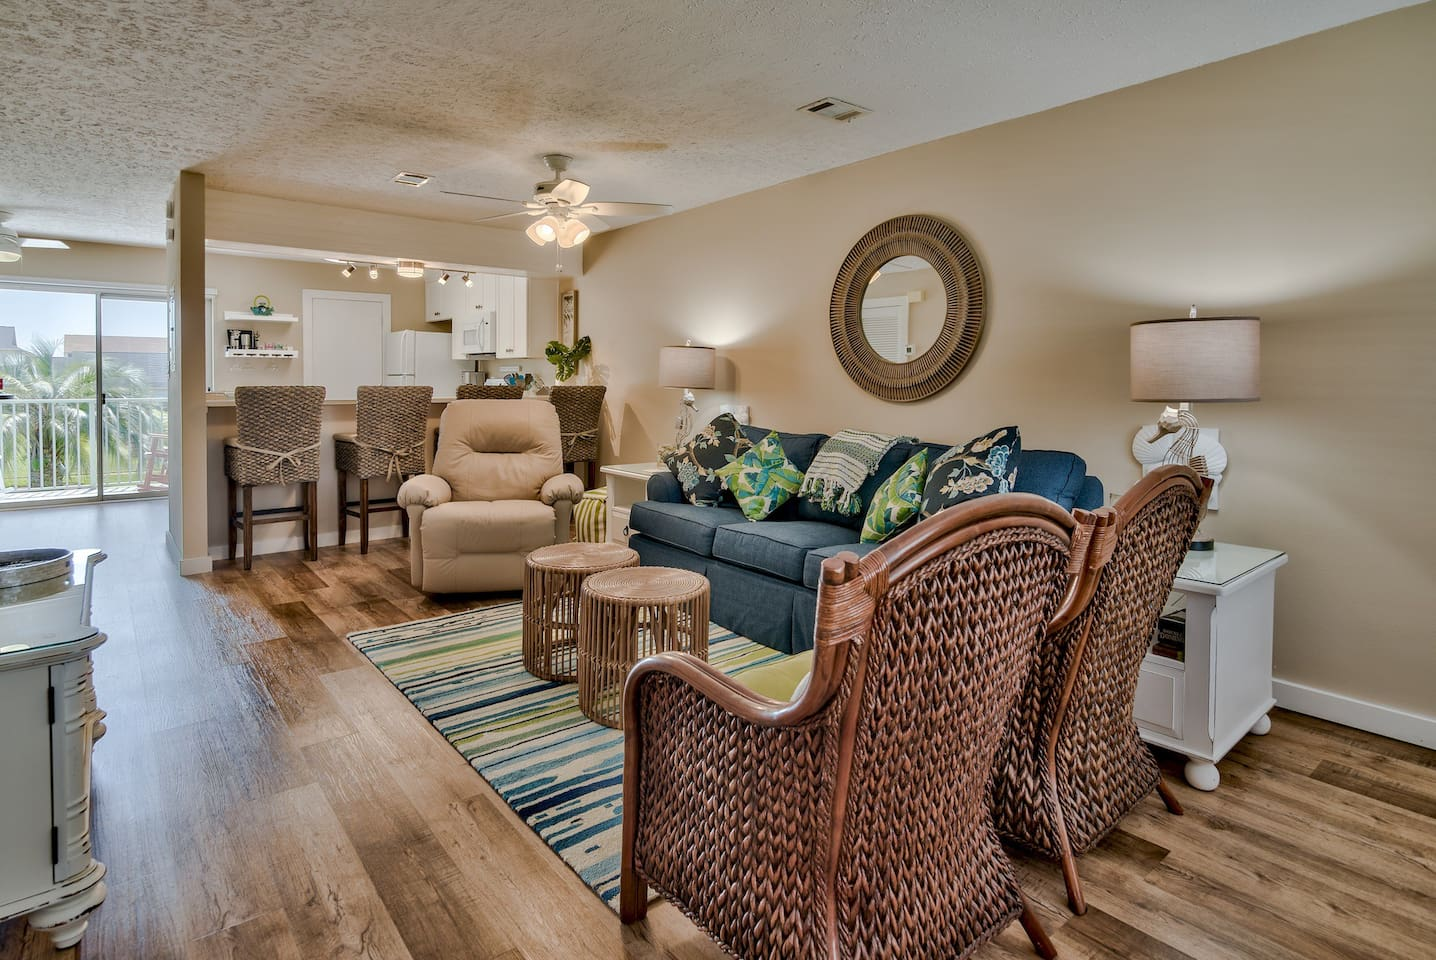 Brand new renovations and furniture. Plenty of room for you and the family to spread out.